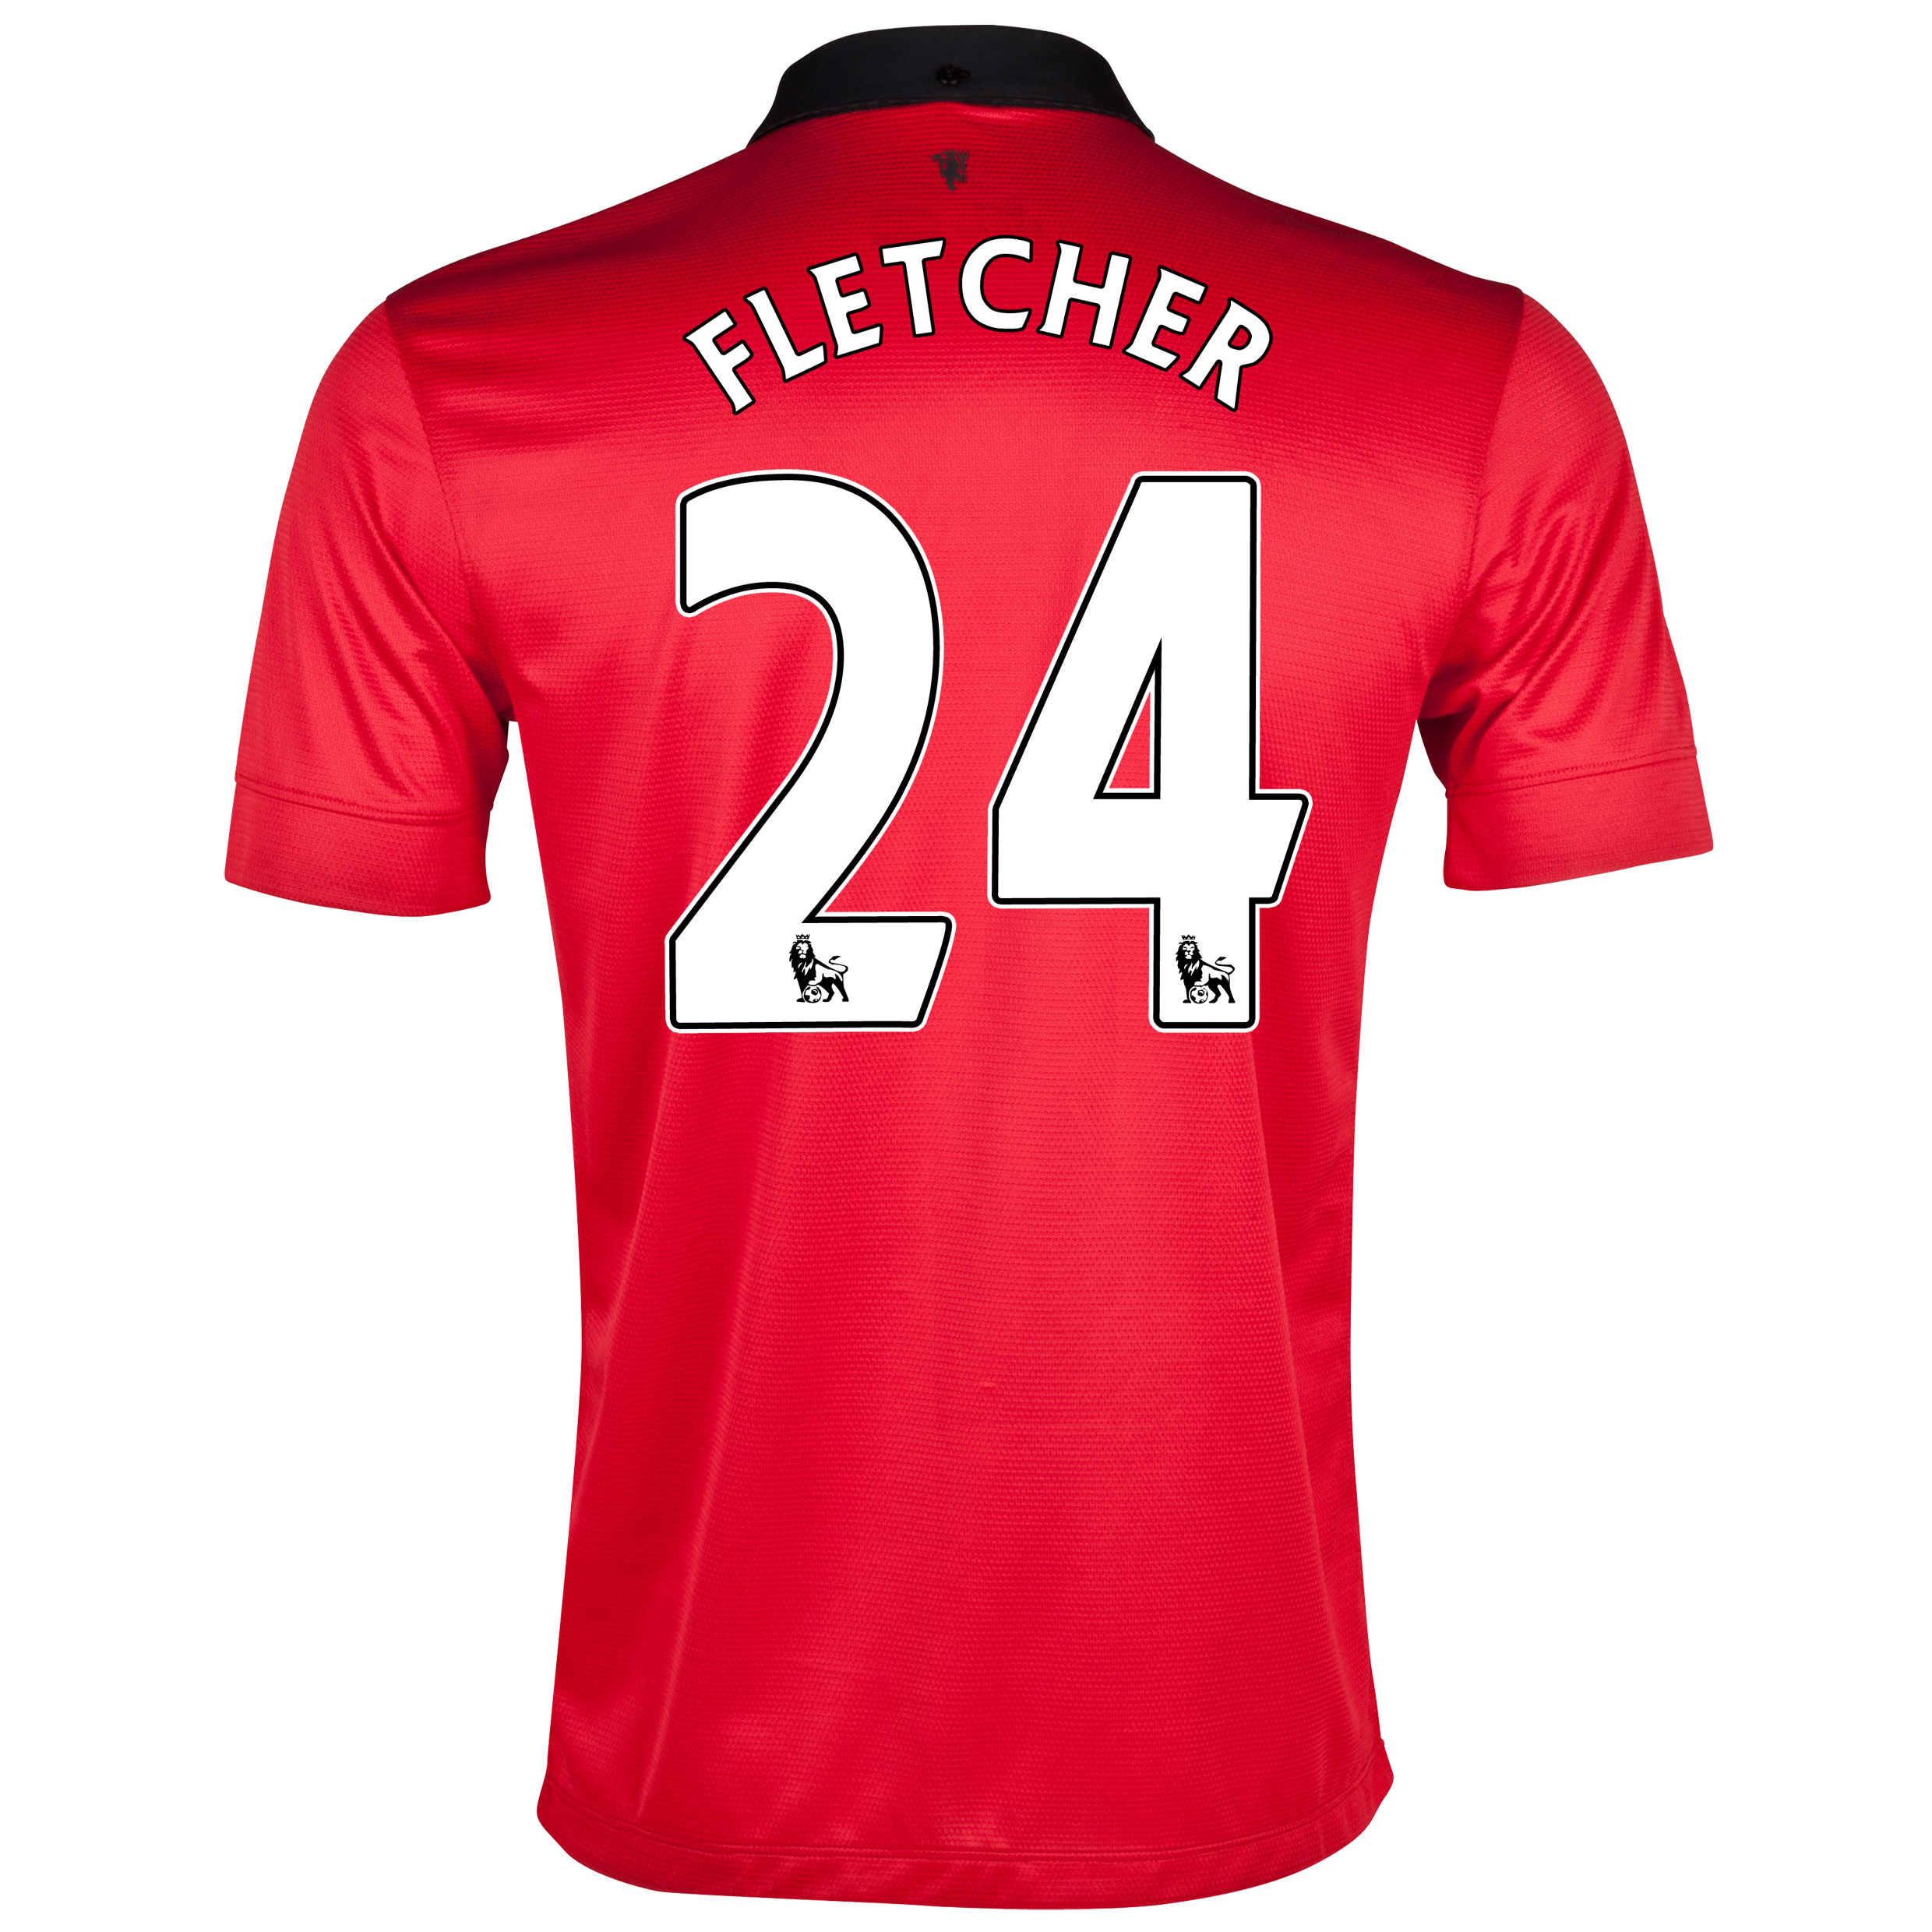 Manchester United Home Shirt 2013/14 with Fletcher 24 printing